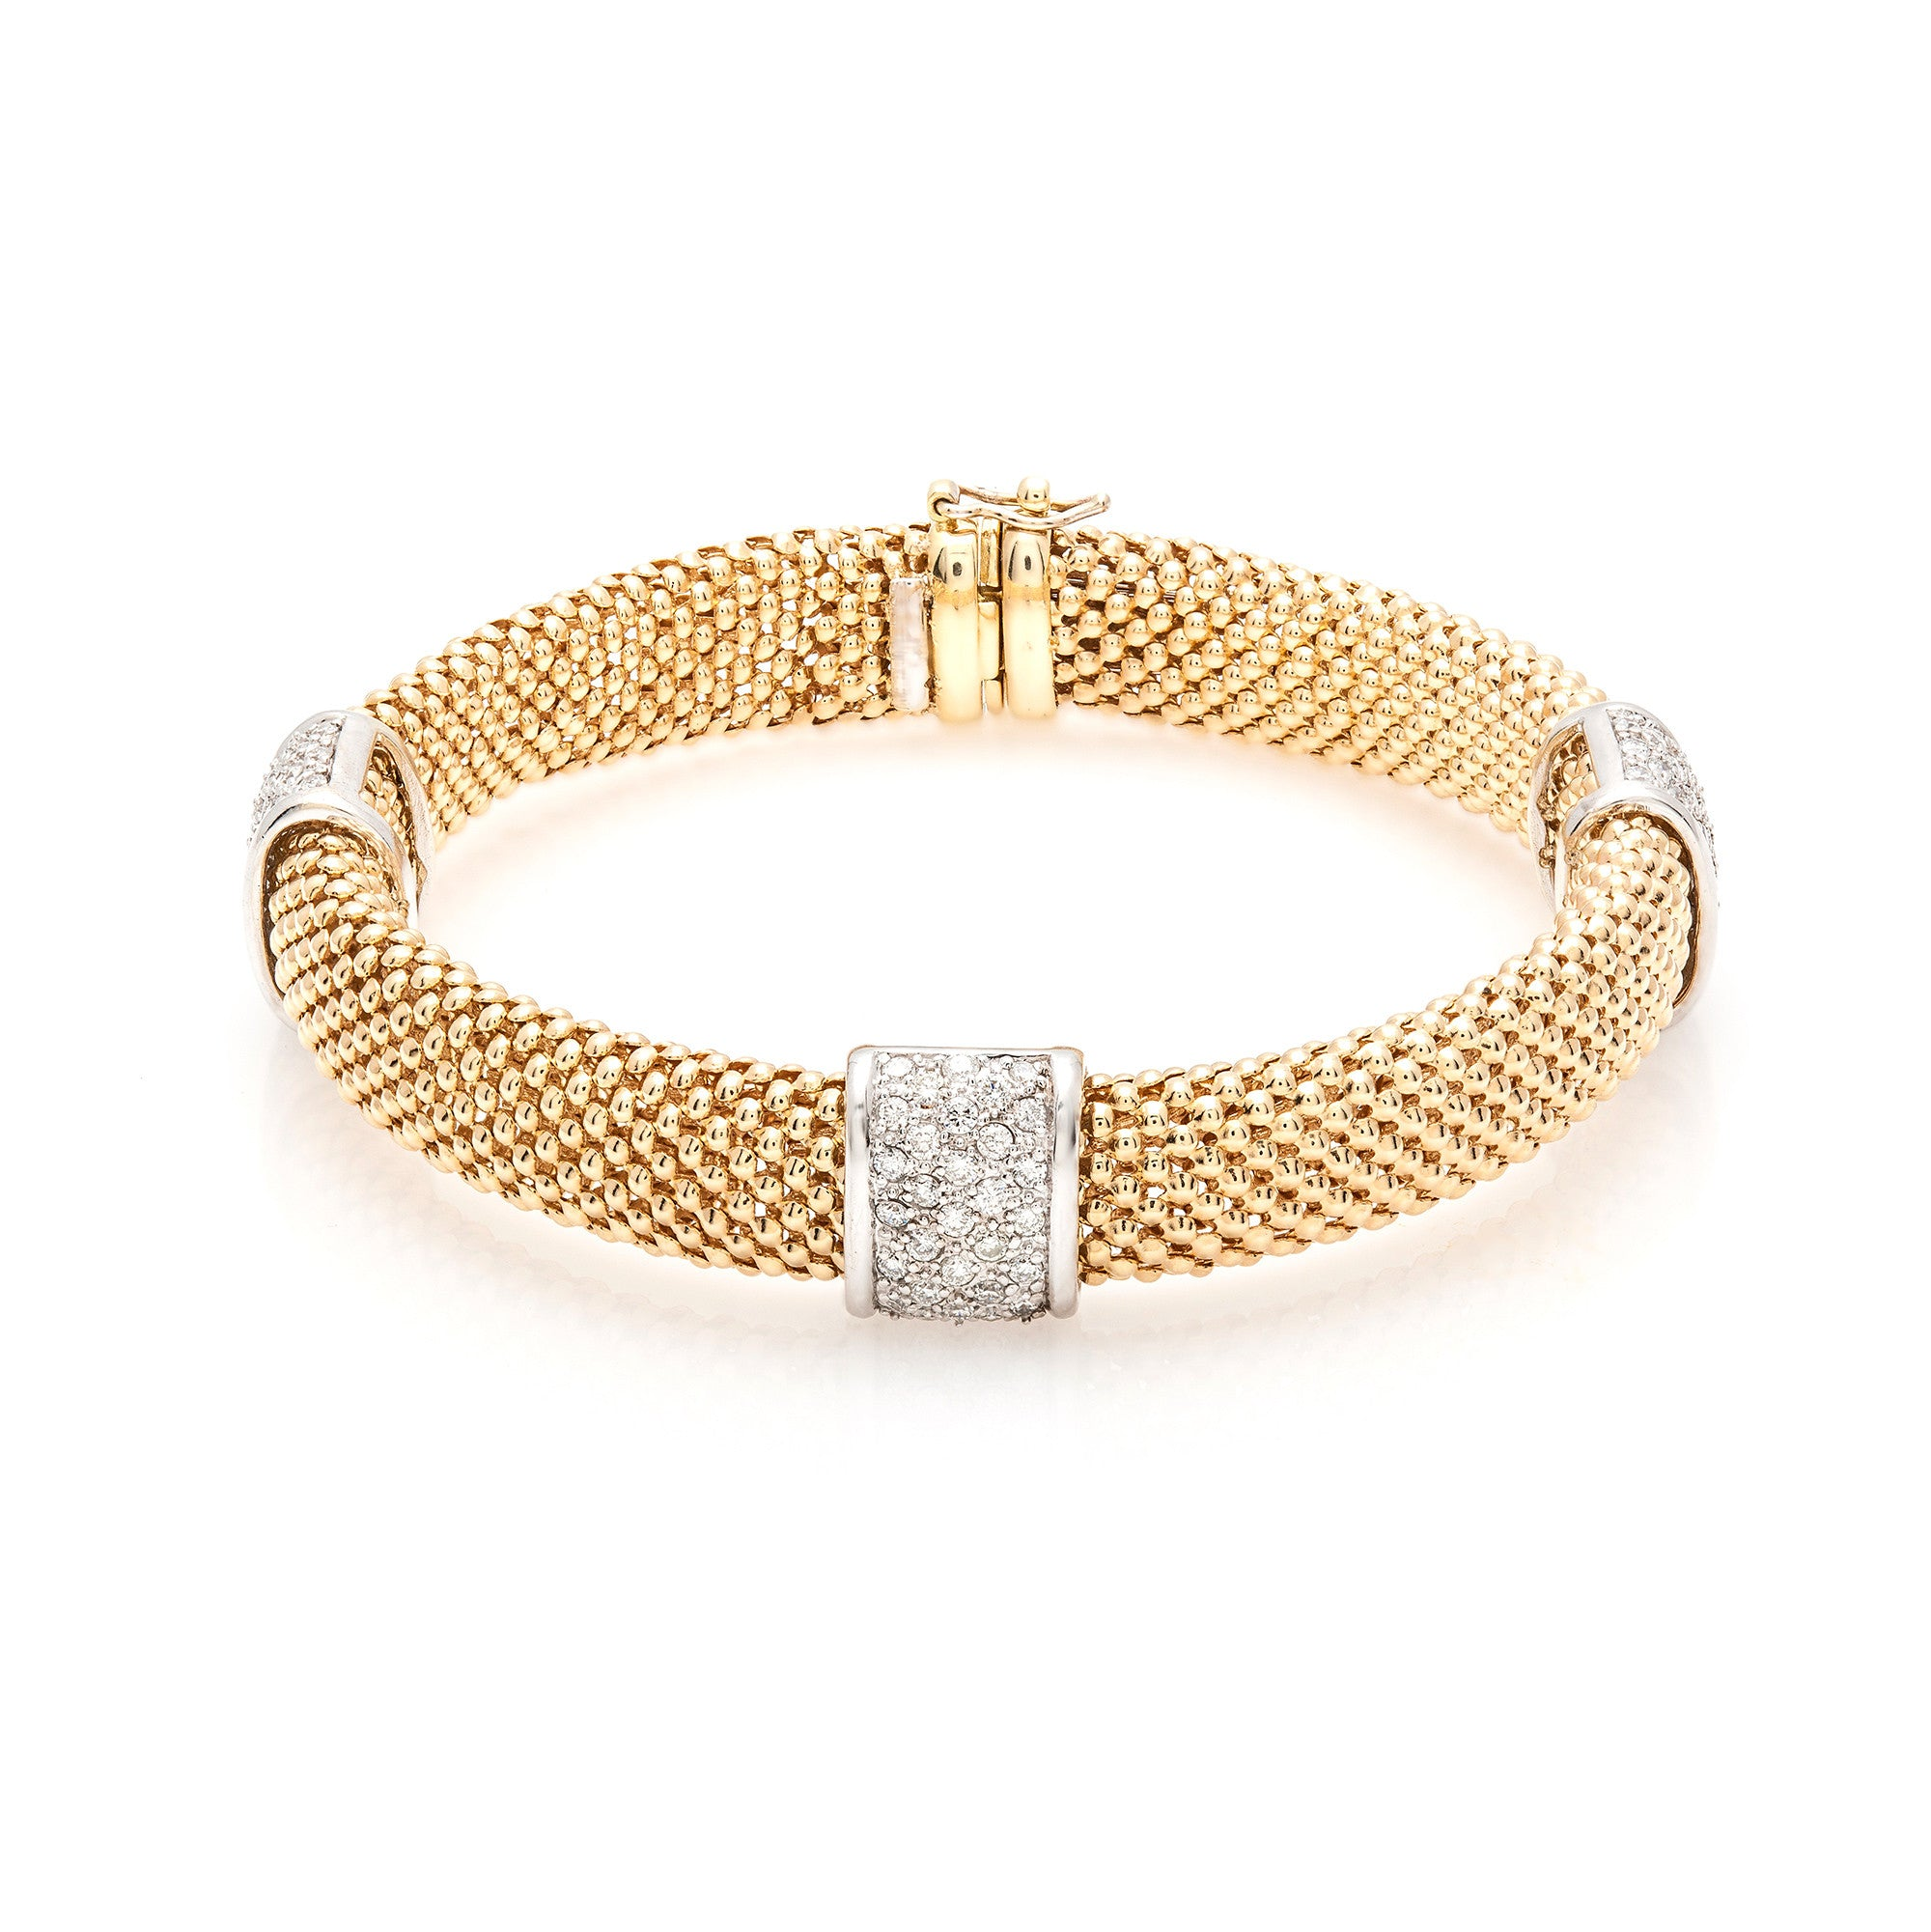 s pois diamond bangle jewelry pave coin moi lyst row bracelet metallic singlerow single roberto bangles gold rose women